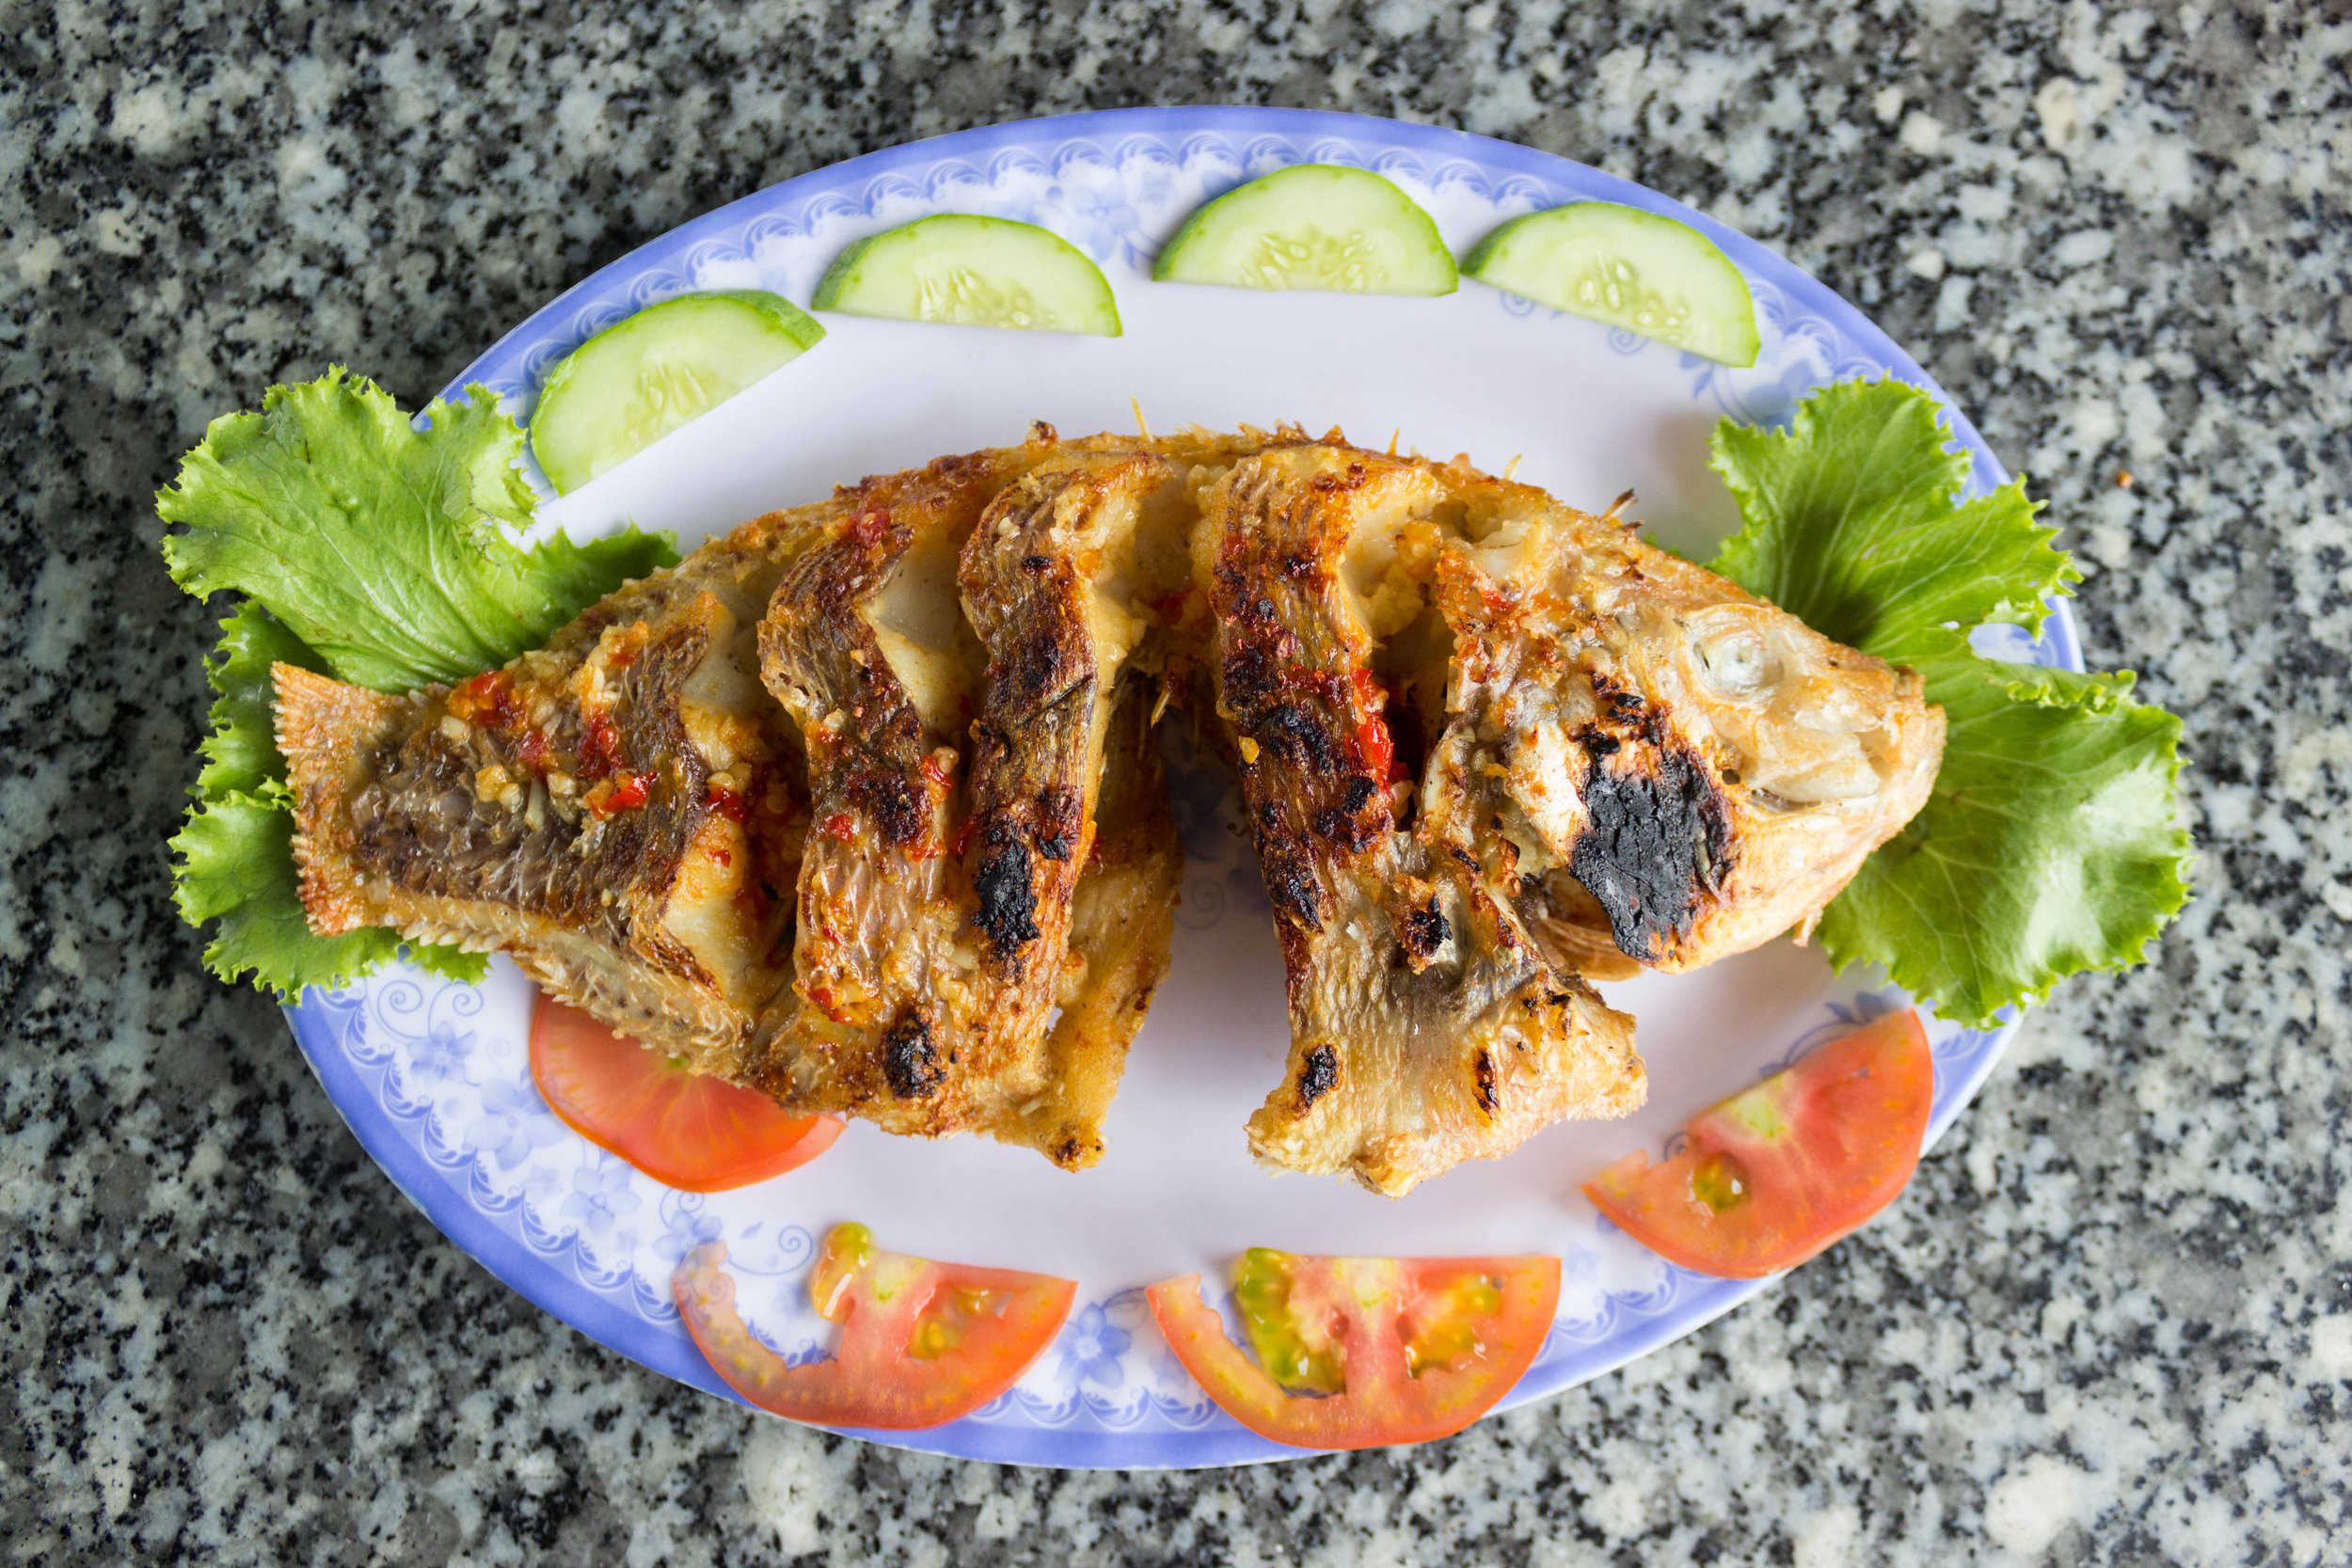 Fresh grilled red snapper seasoned with garlic and chili